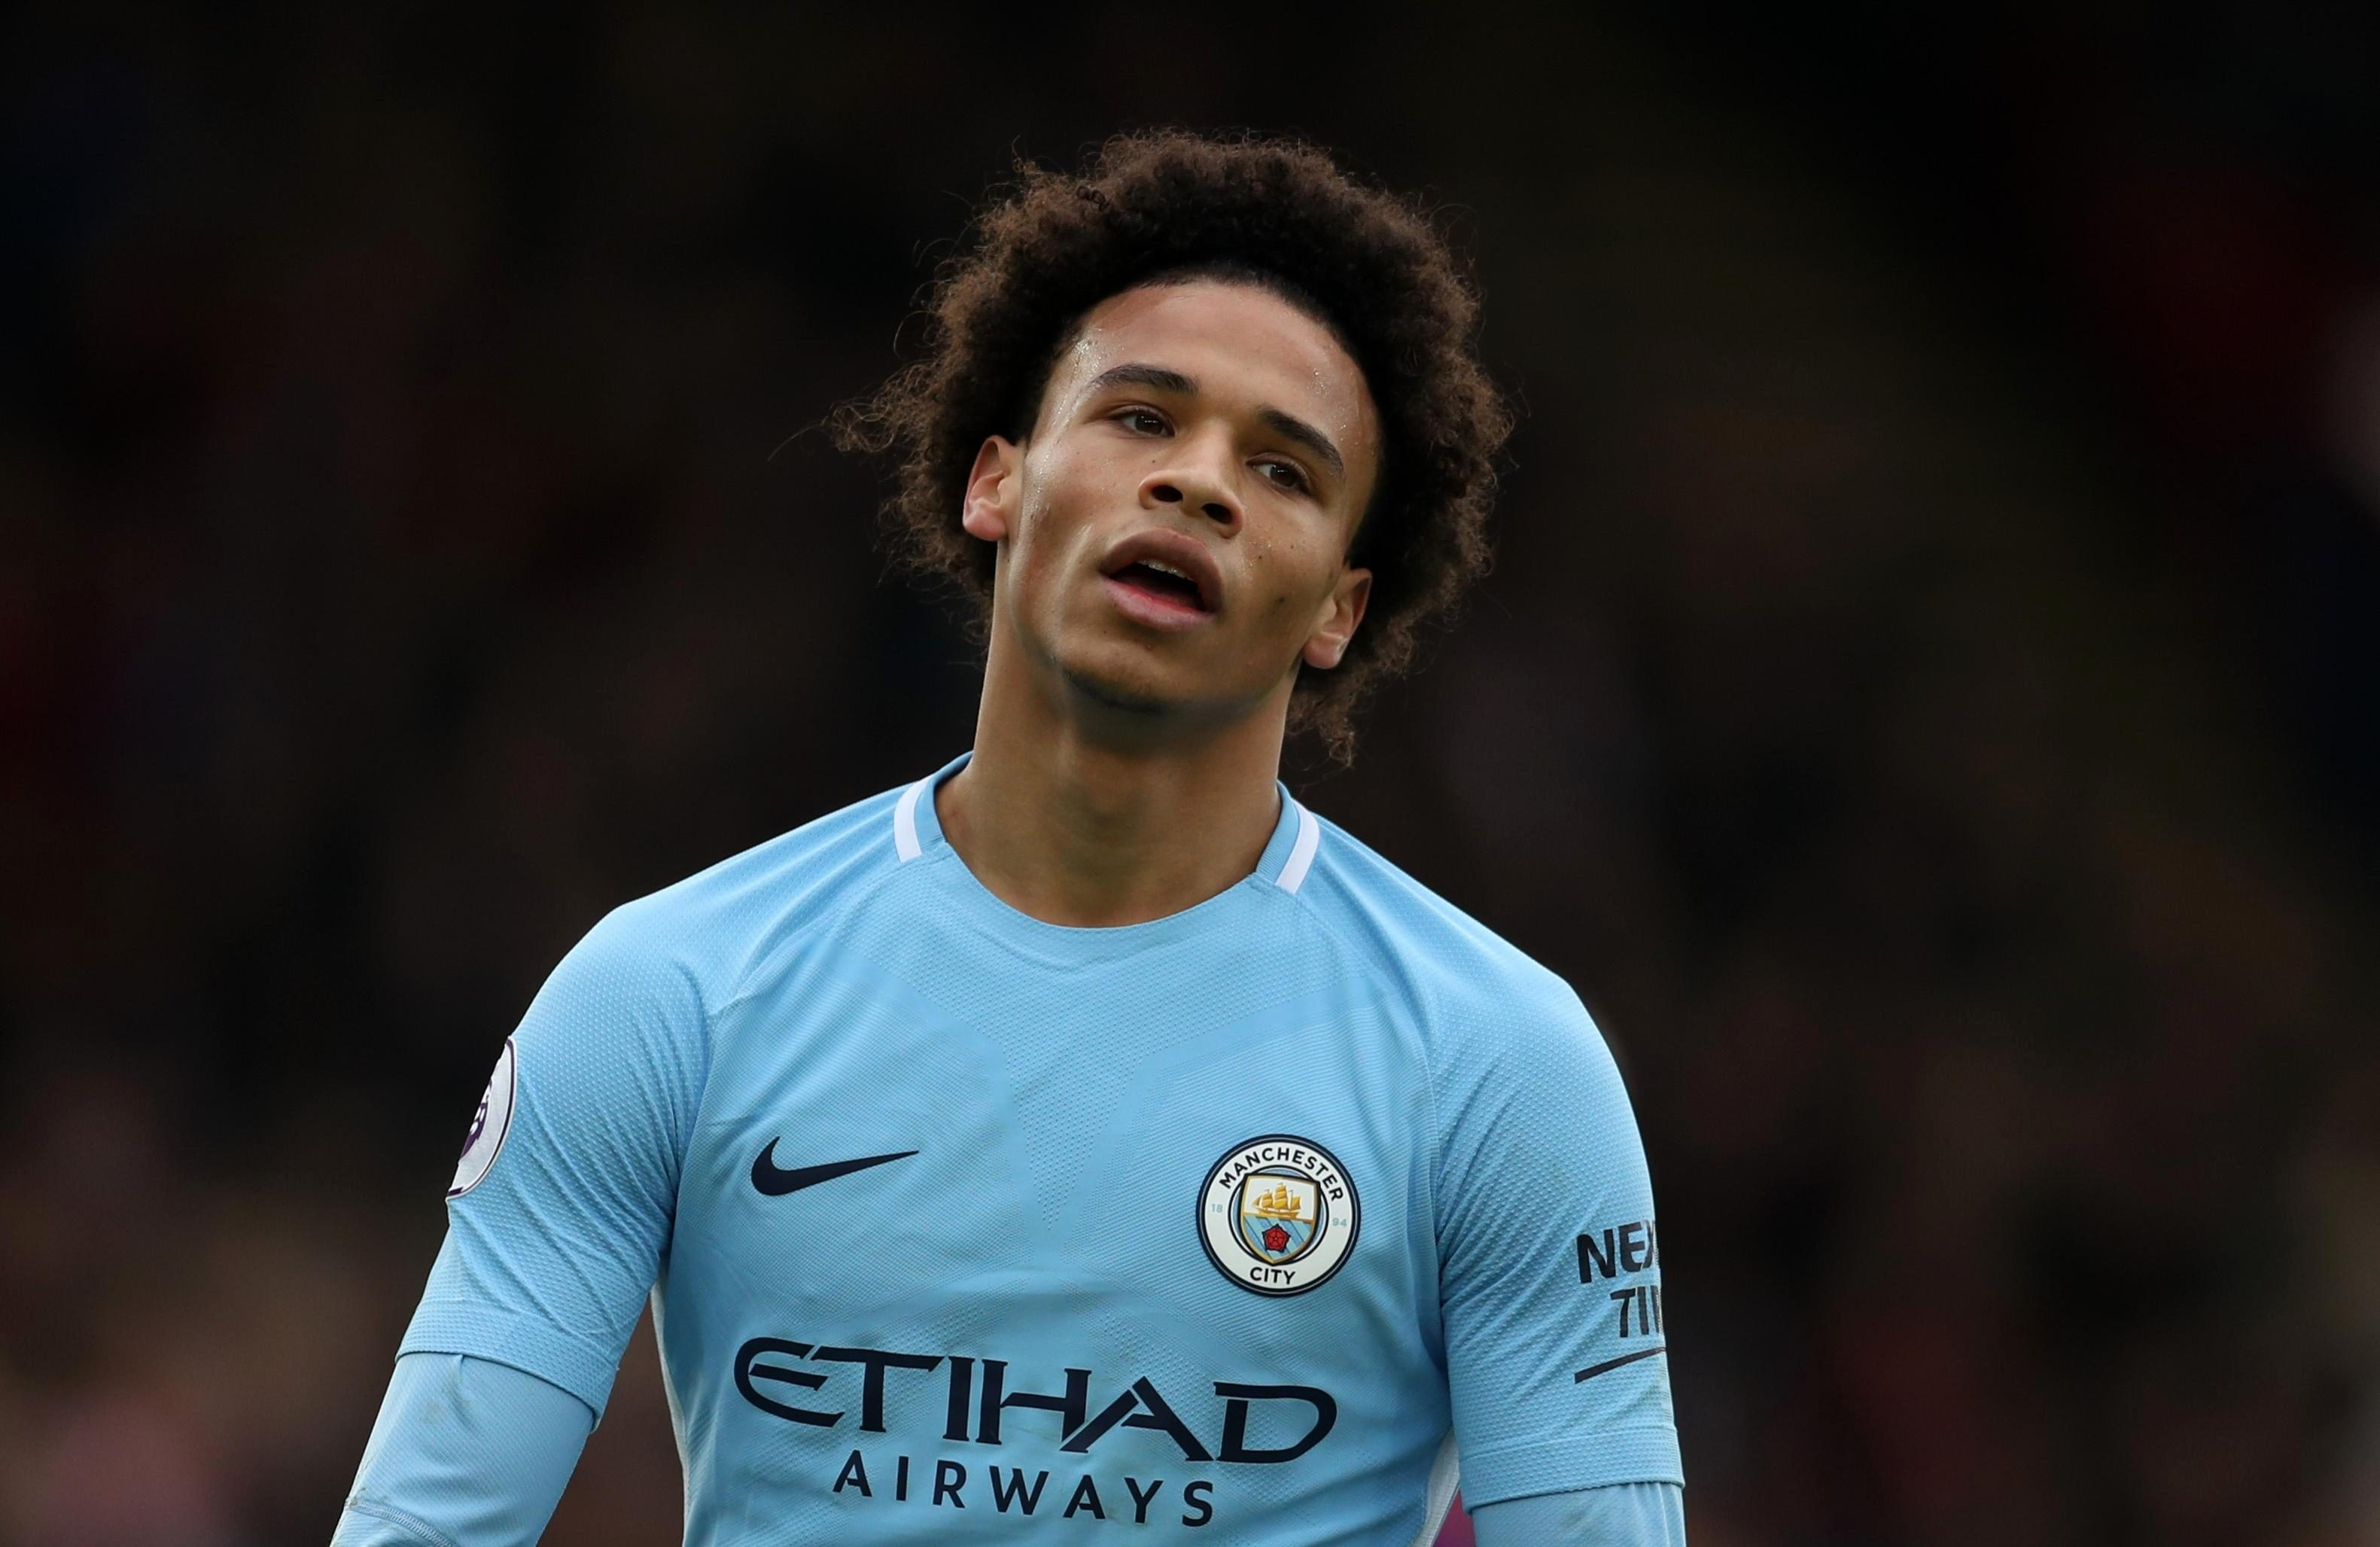 The winger played a crucial part in Man City's double winning season